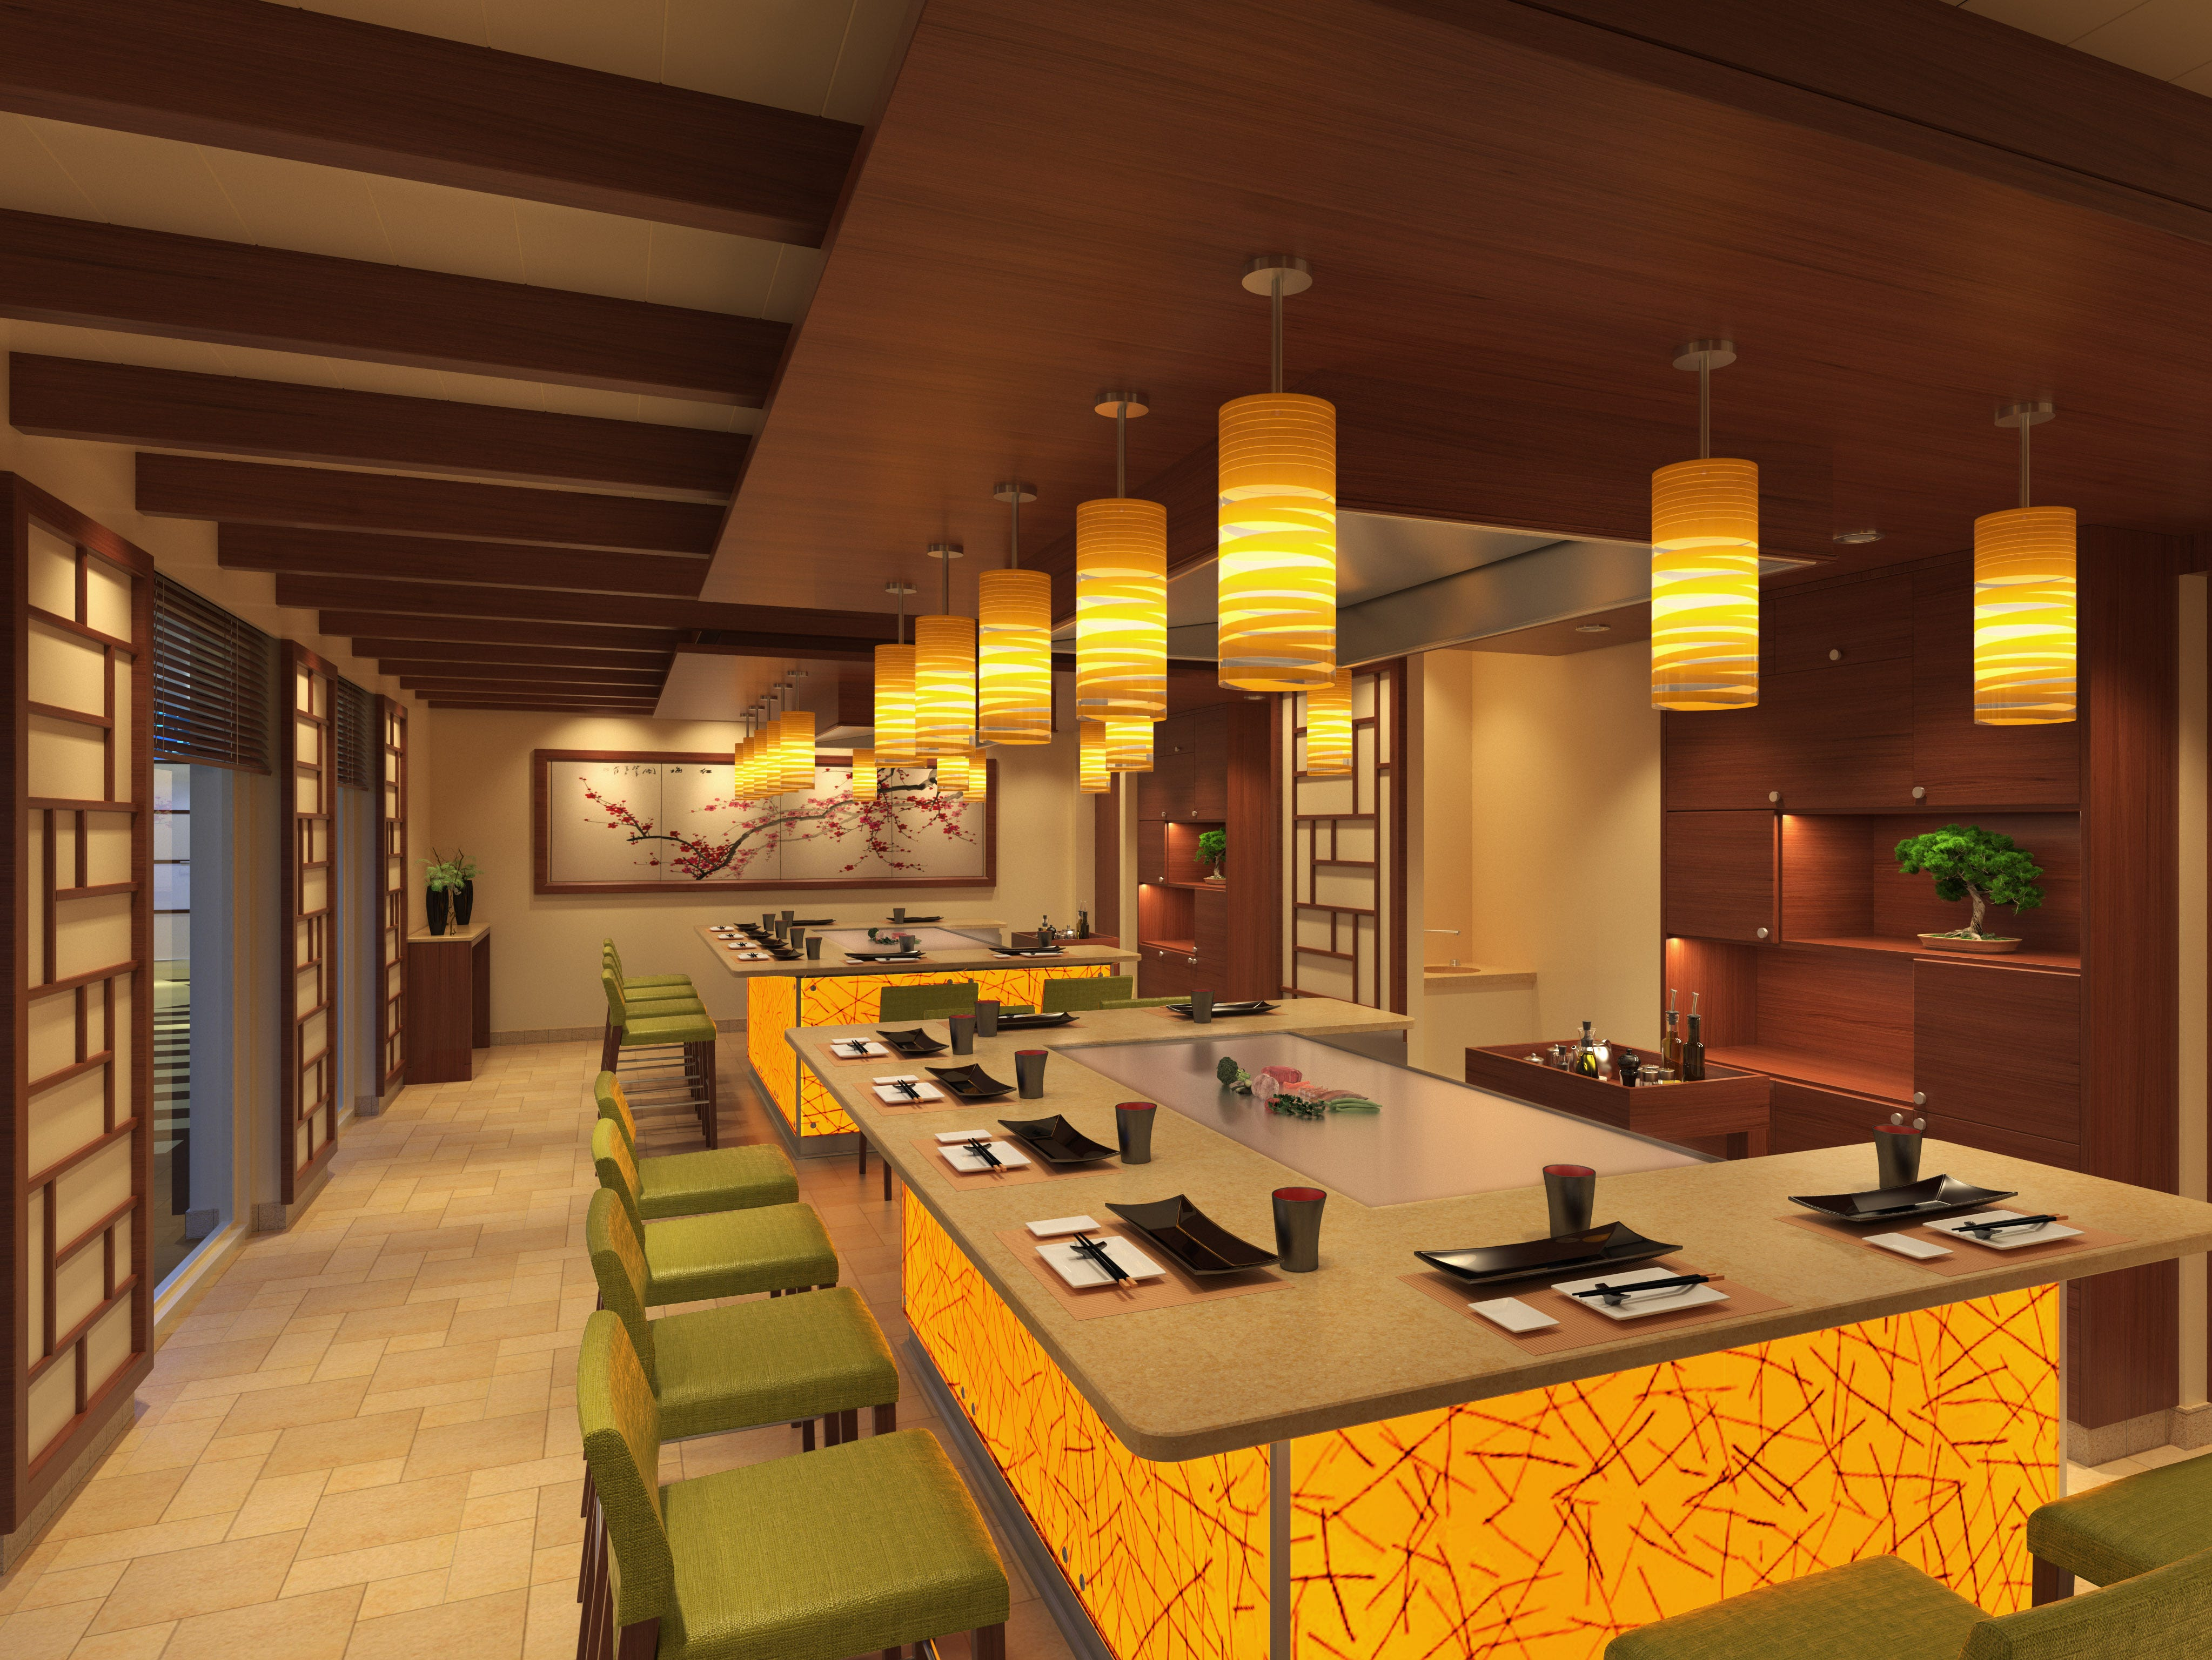 Among other eateries, Carnival Panorama also will have a teppanyaki restaurant.